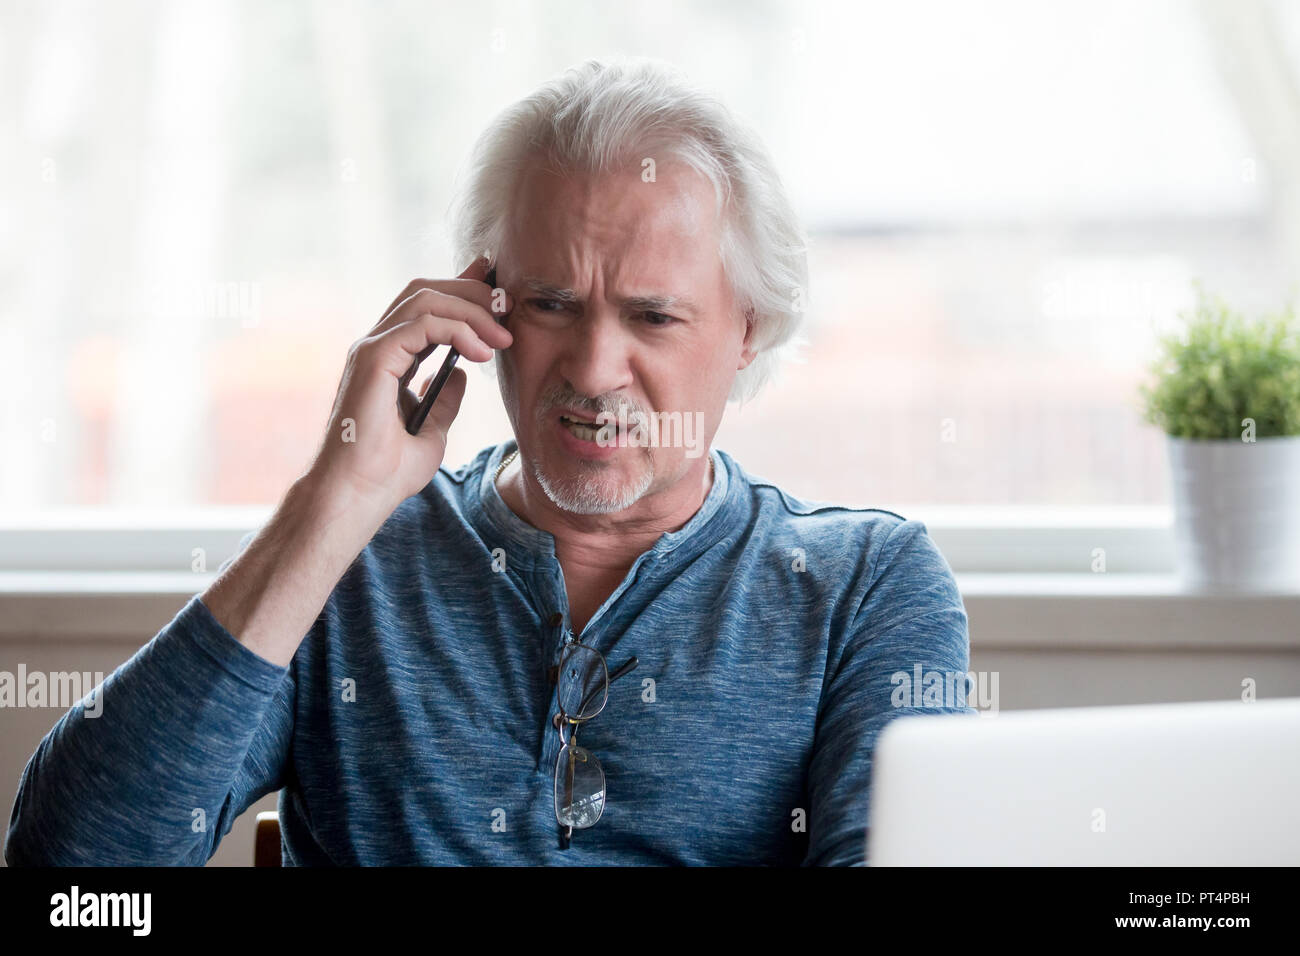 Angry senior man arguing talking on phone complaining on problem - Stock Image